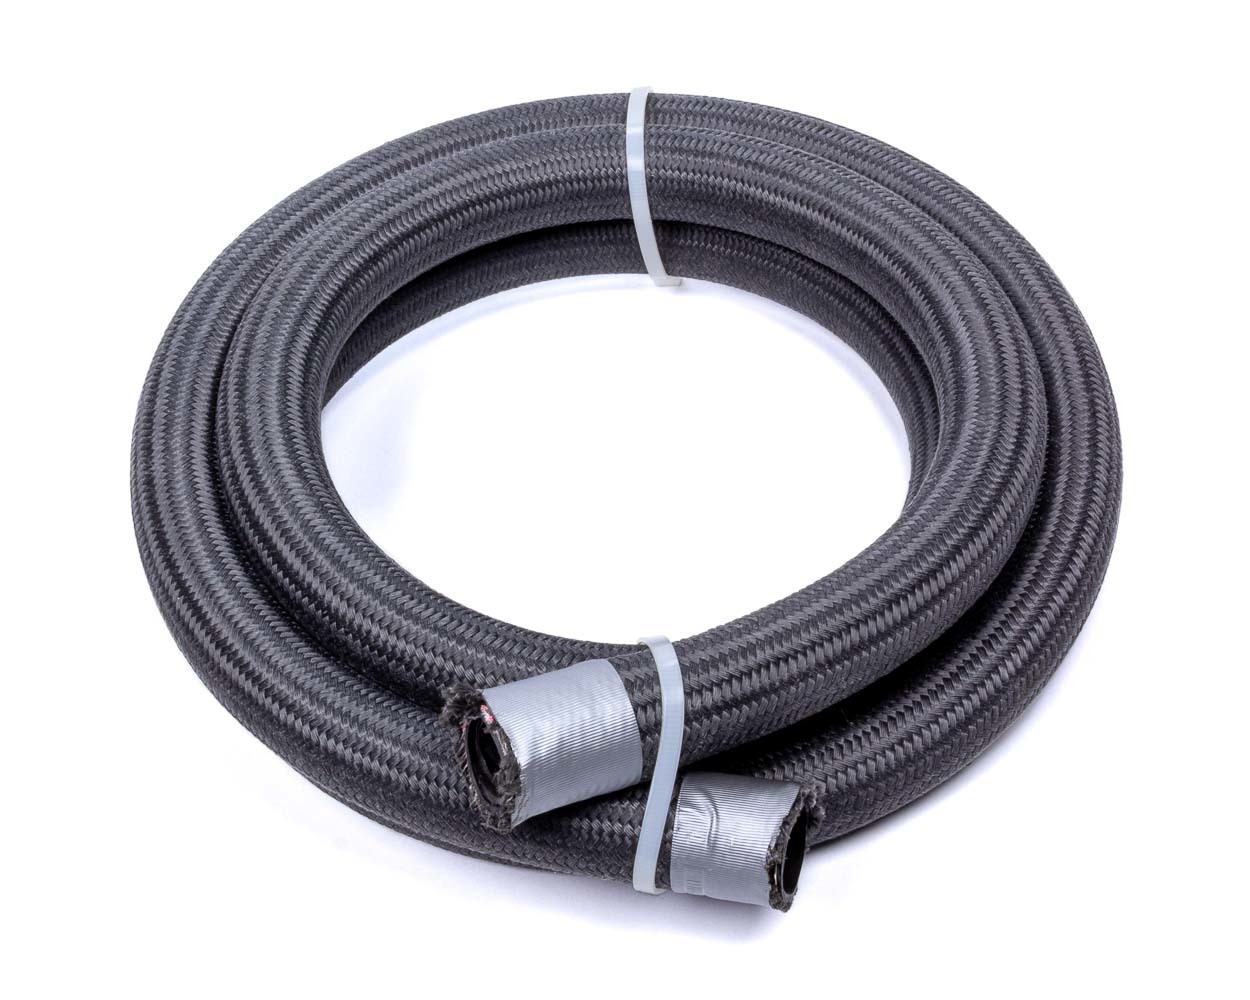 Fragola 2701012 Hose, Race-Rite, 12 AN, 10 ft, Braided Fire Retardant Fabric, PTFE, Black, Each